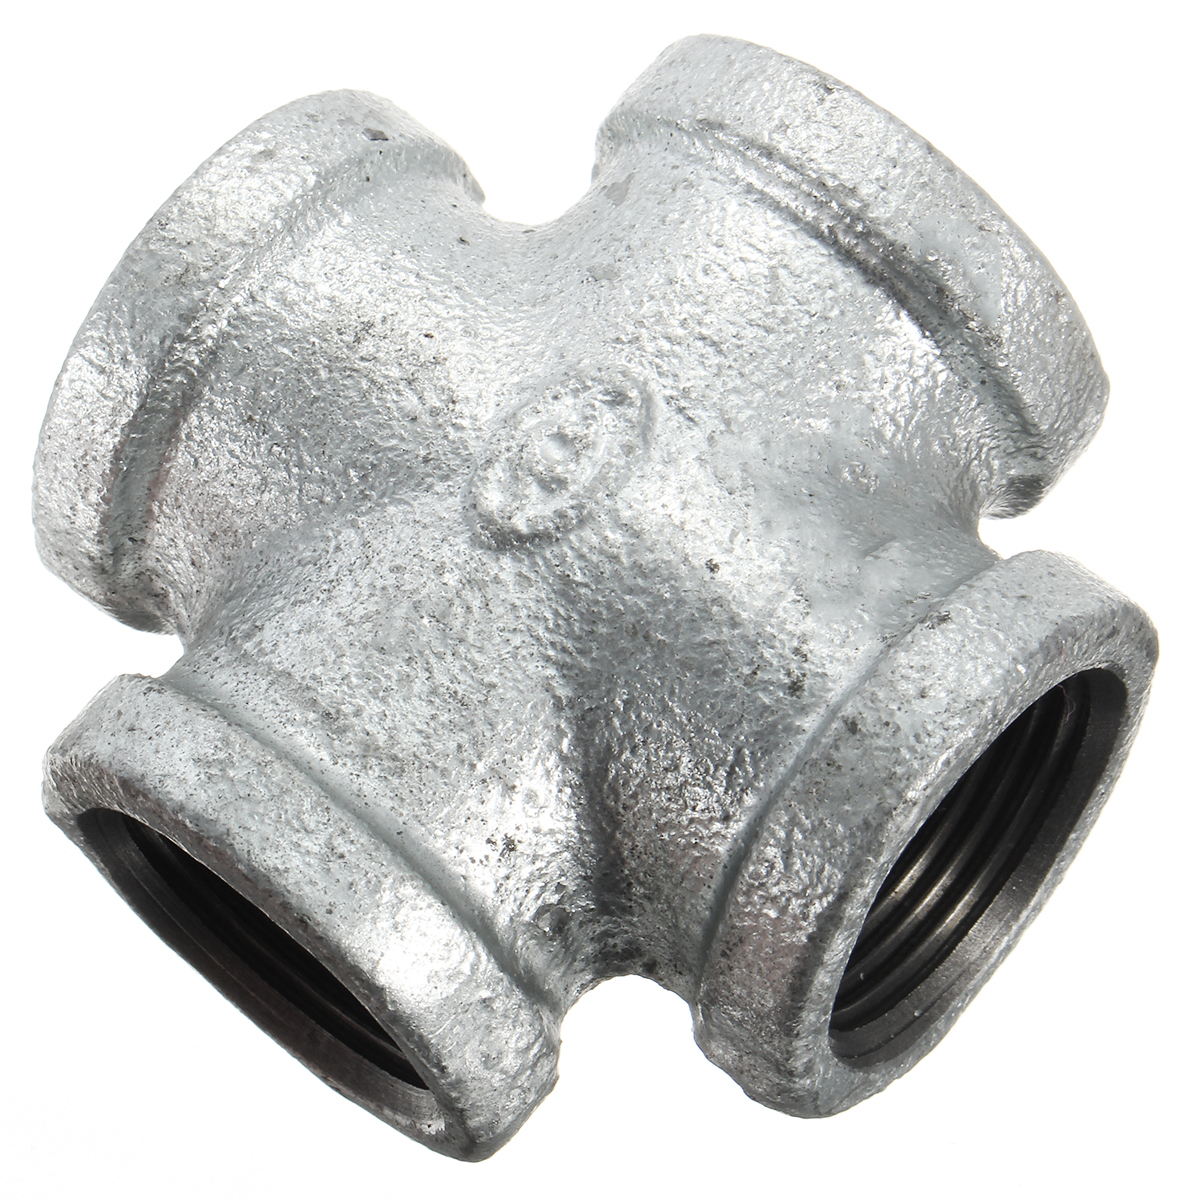 Way black iron pipe threaded coupling tee fittings cross